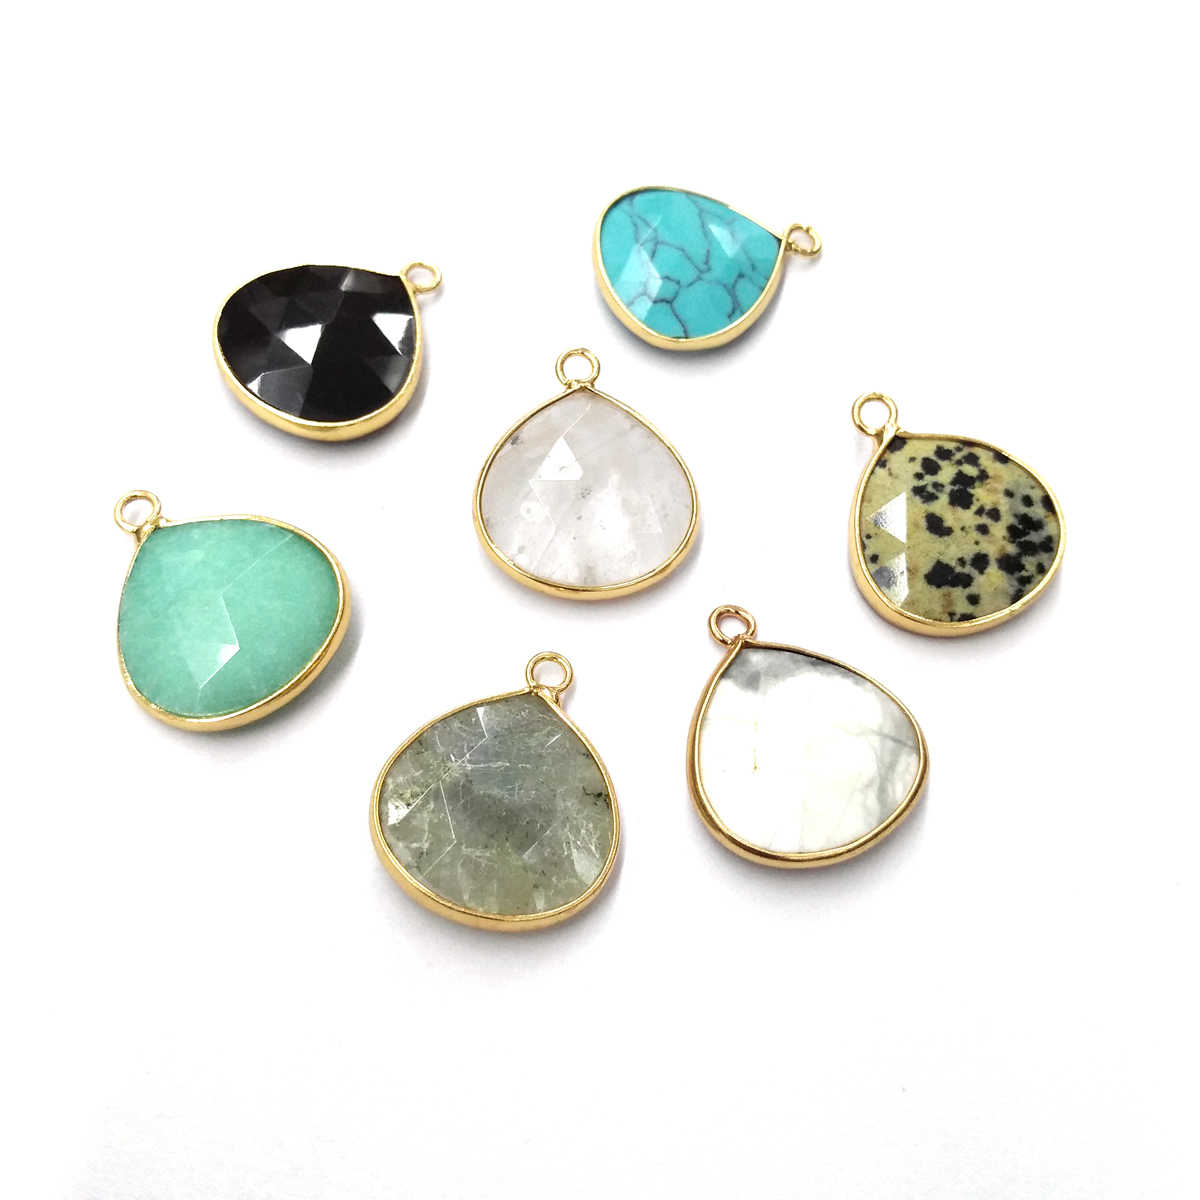 Natural Stone Agates Pendant Charms Pendants for Jewelry Making DIY Necklace Size 20x24 mm